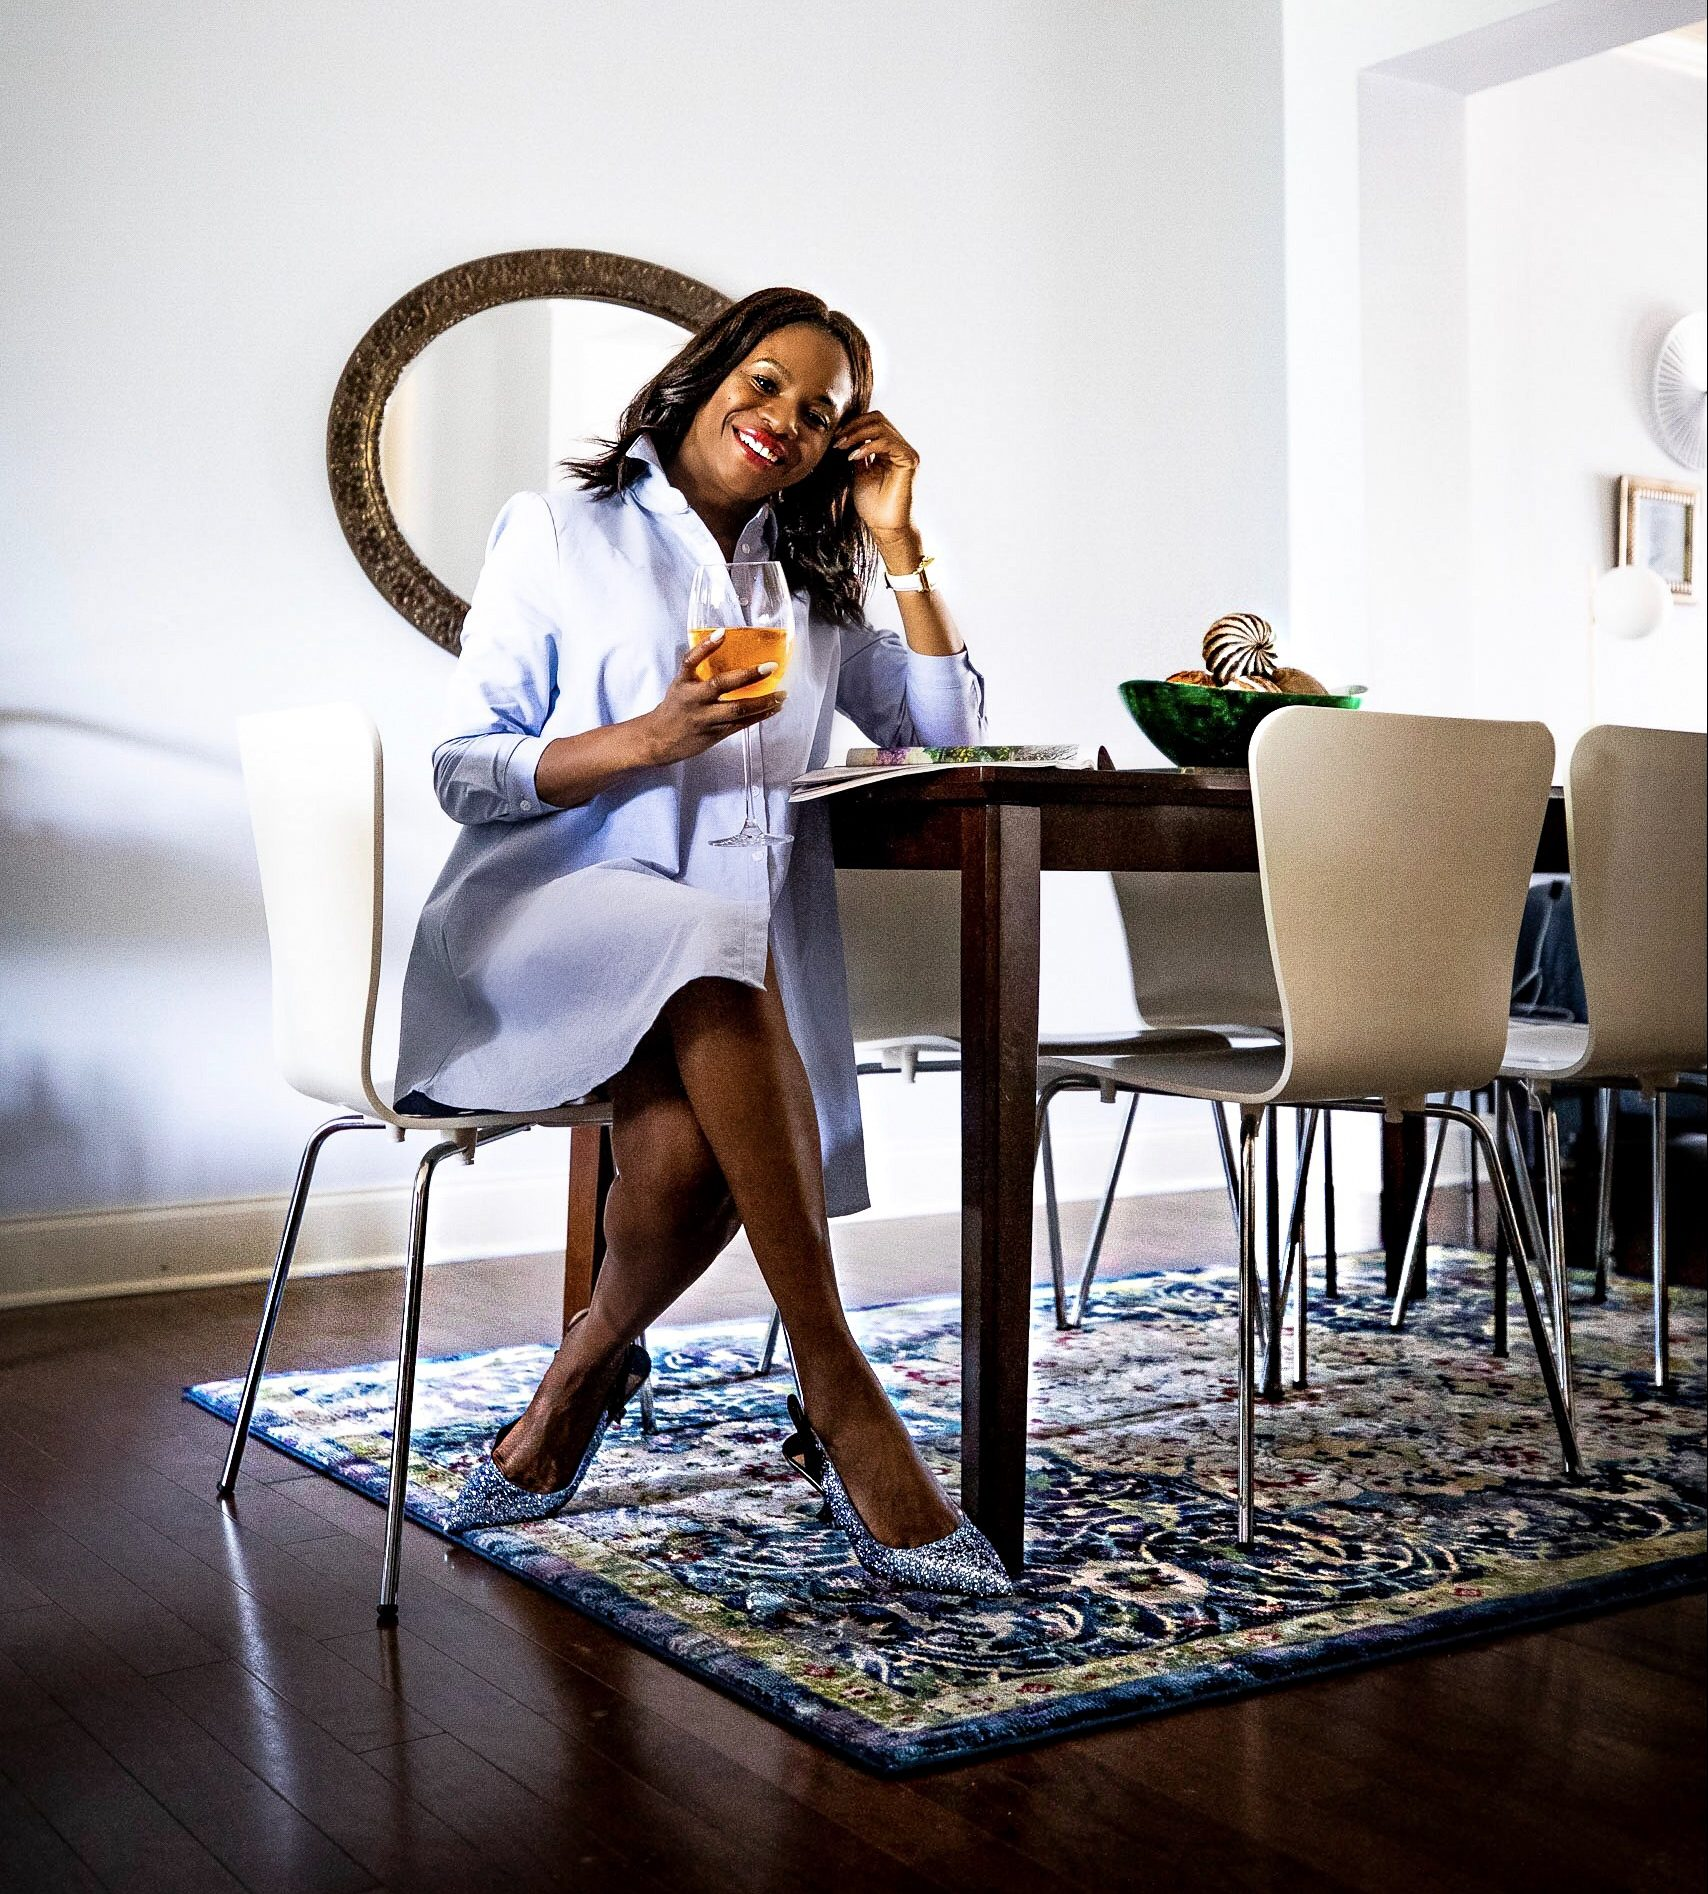 Atlanta Fashion and Lifestyle blogger Monica Awe-Etuk reveals how she transformed her home with rugs from Nourison. Home decor blog.